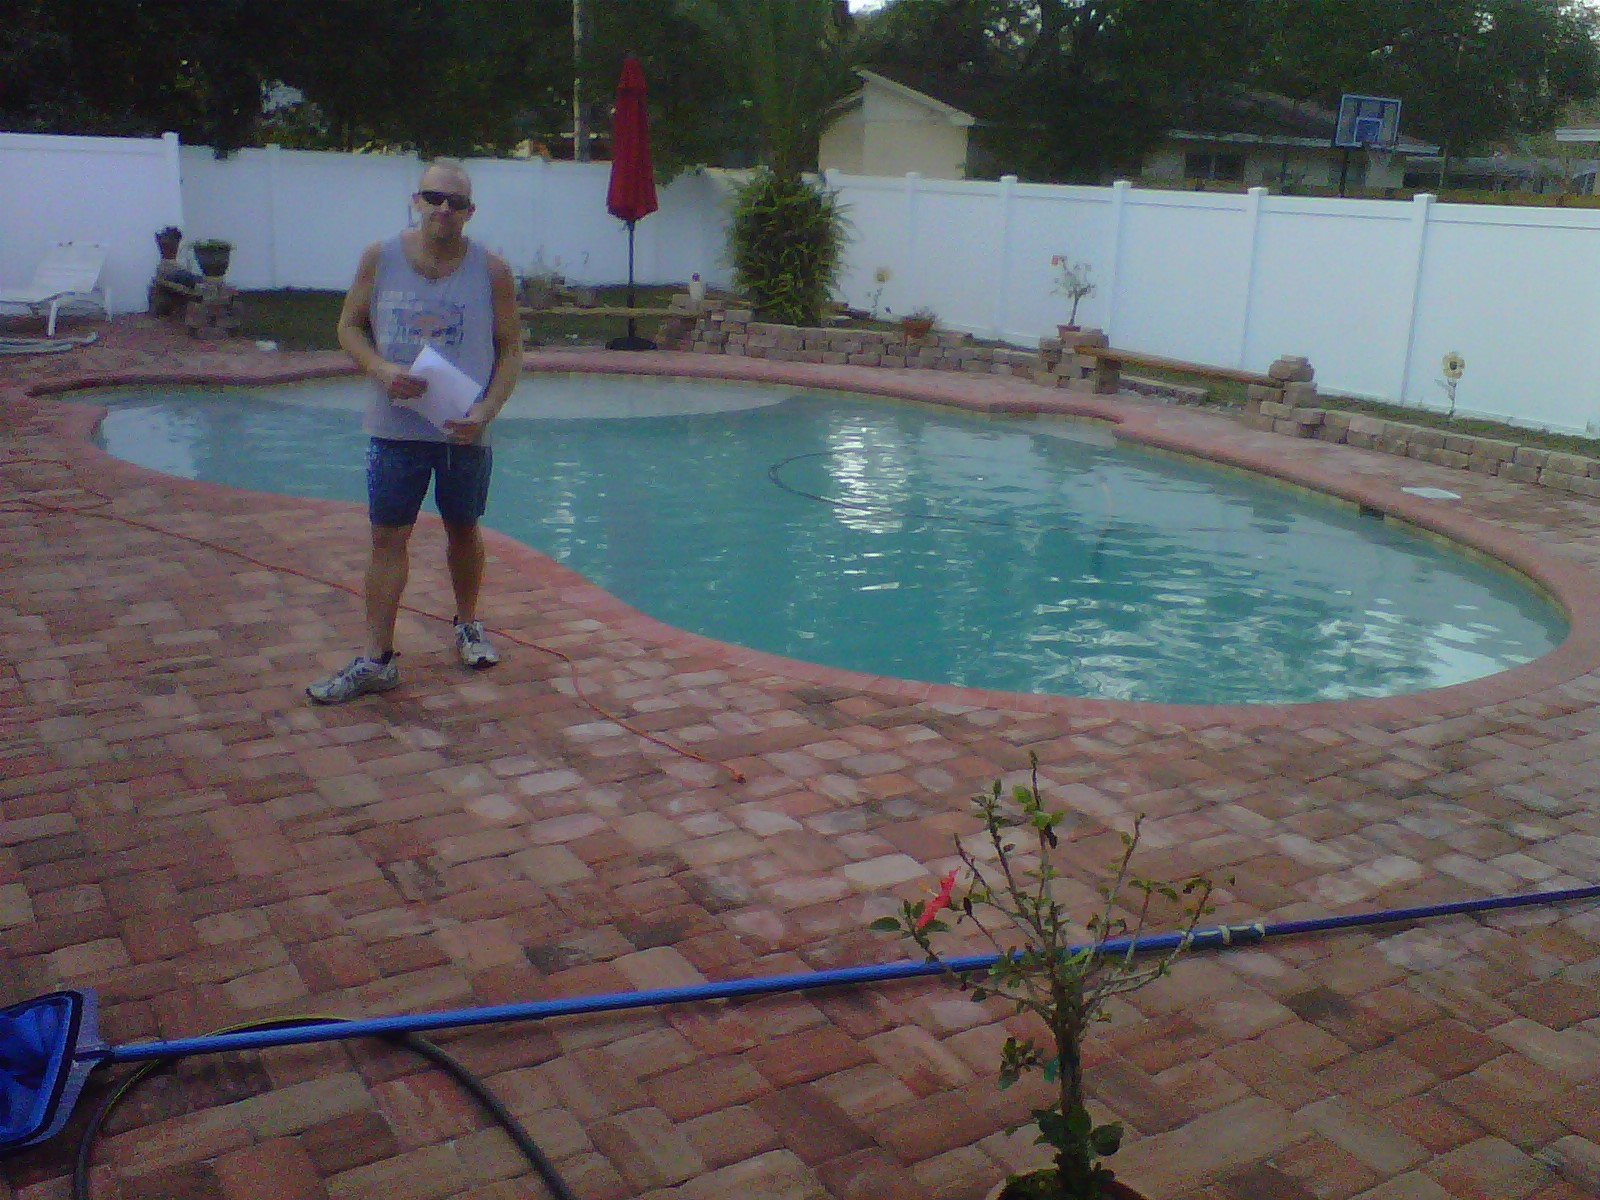 A HAPPY POOL CUSTOMER